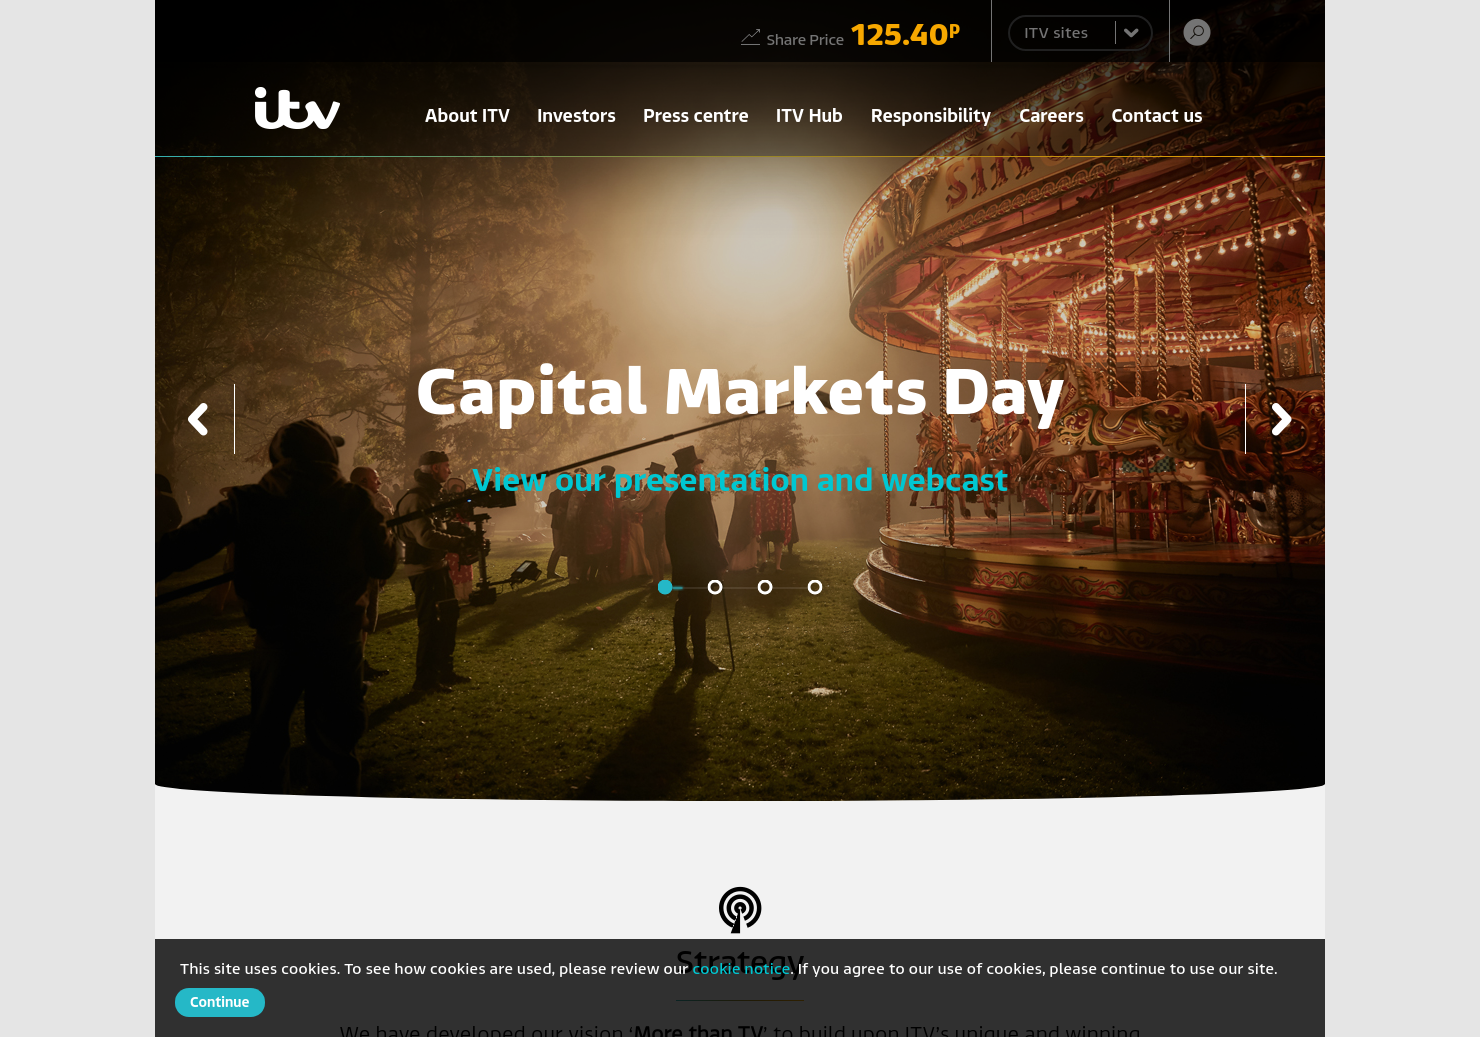 ITV Home Page